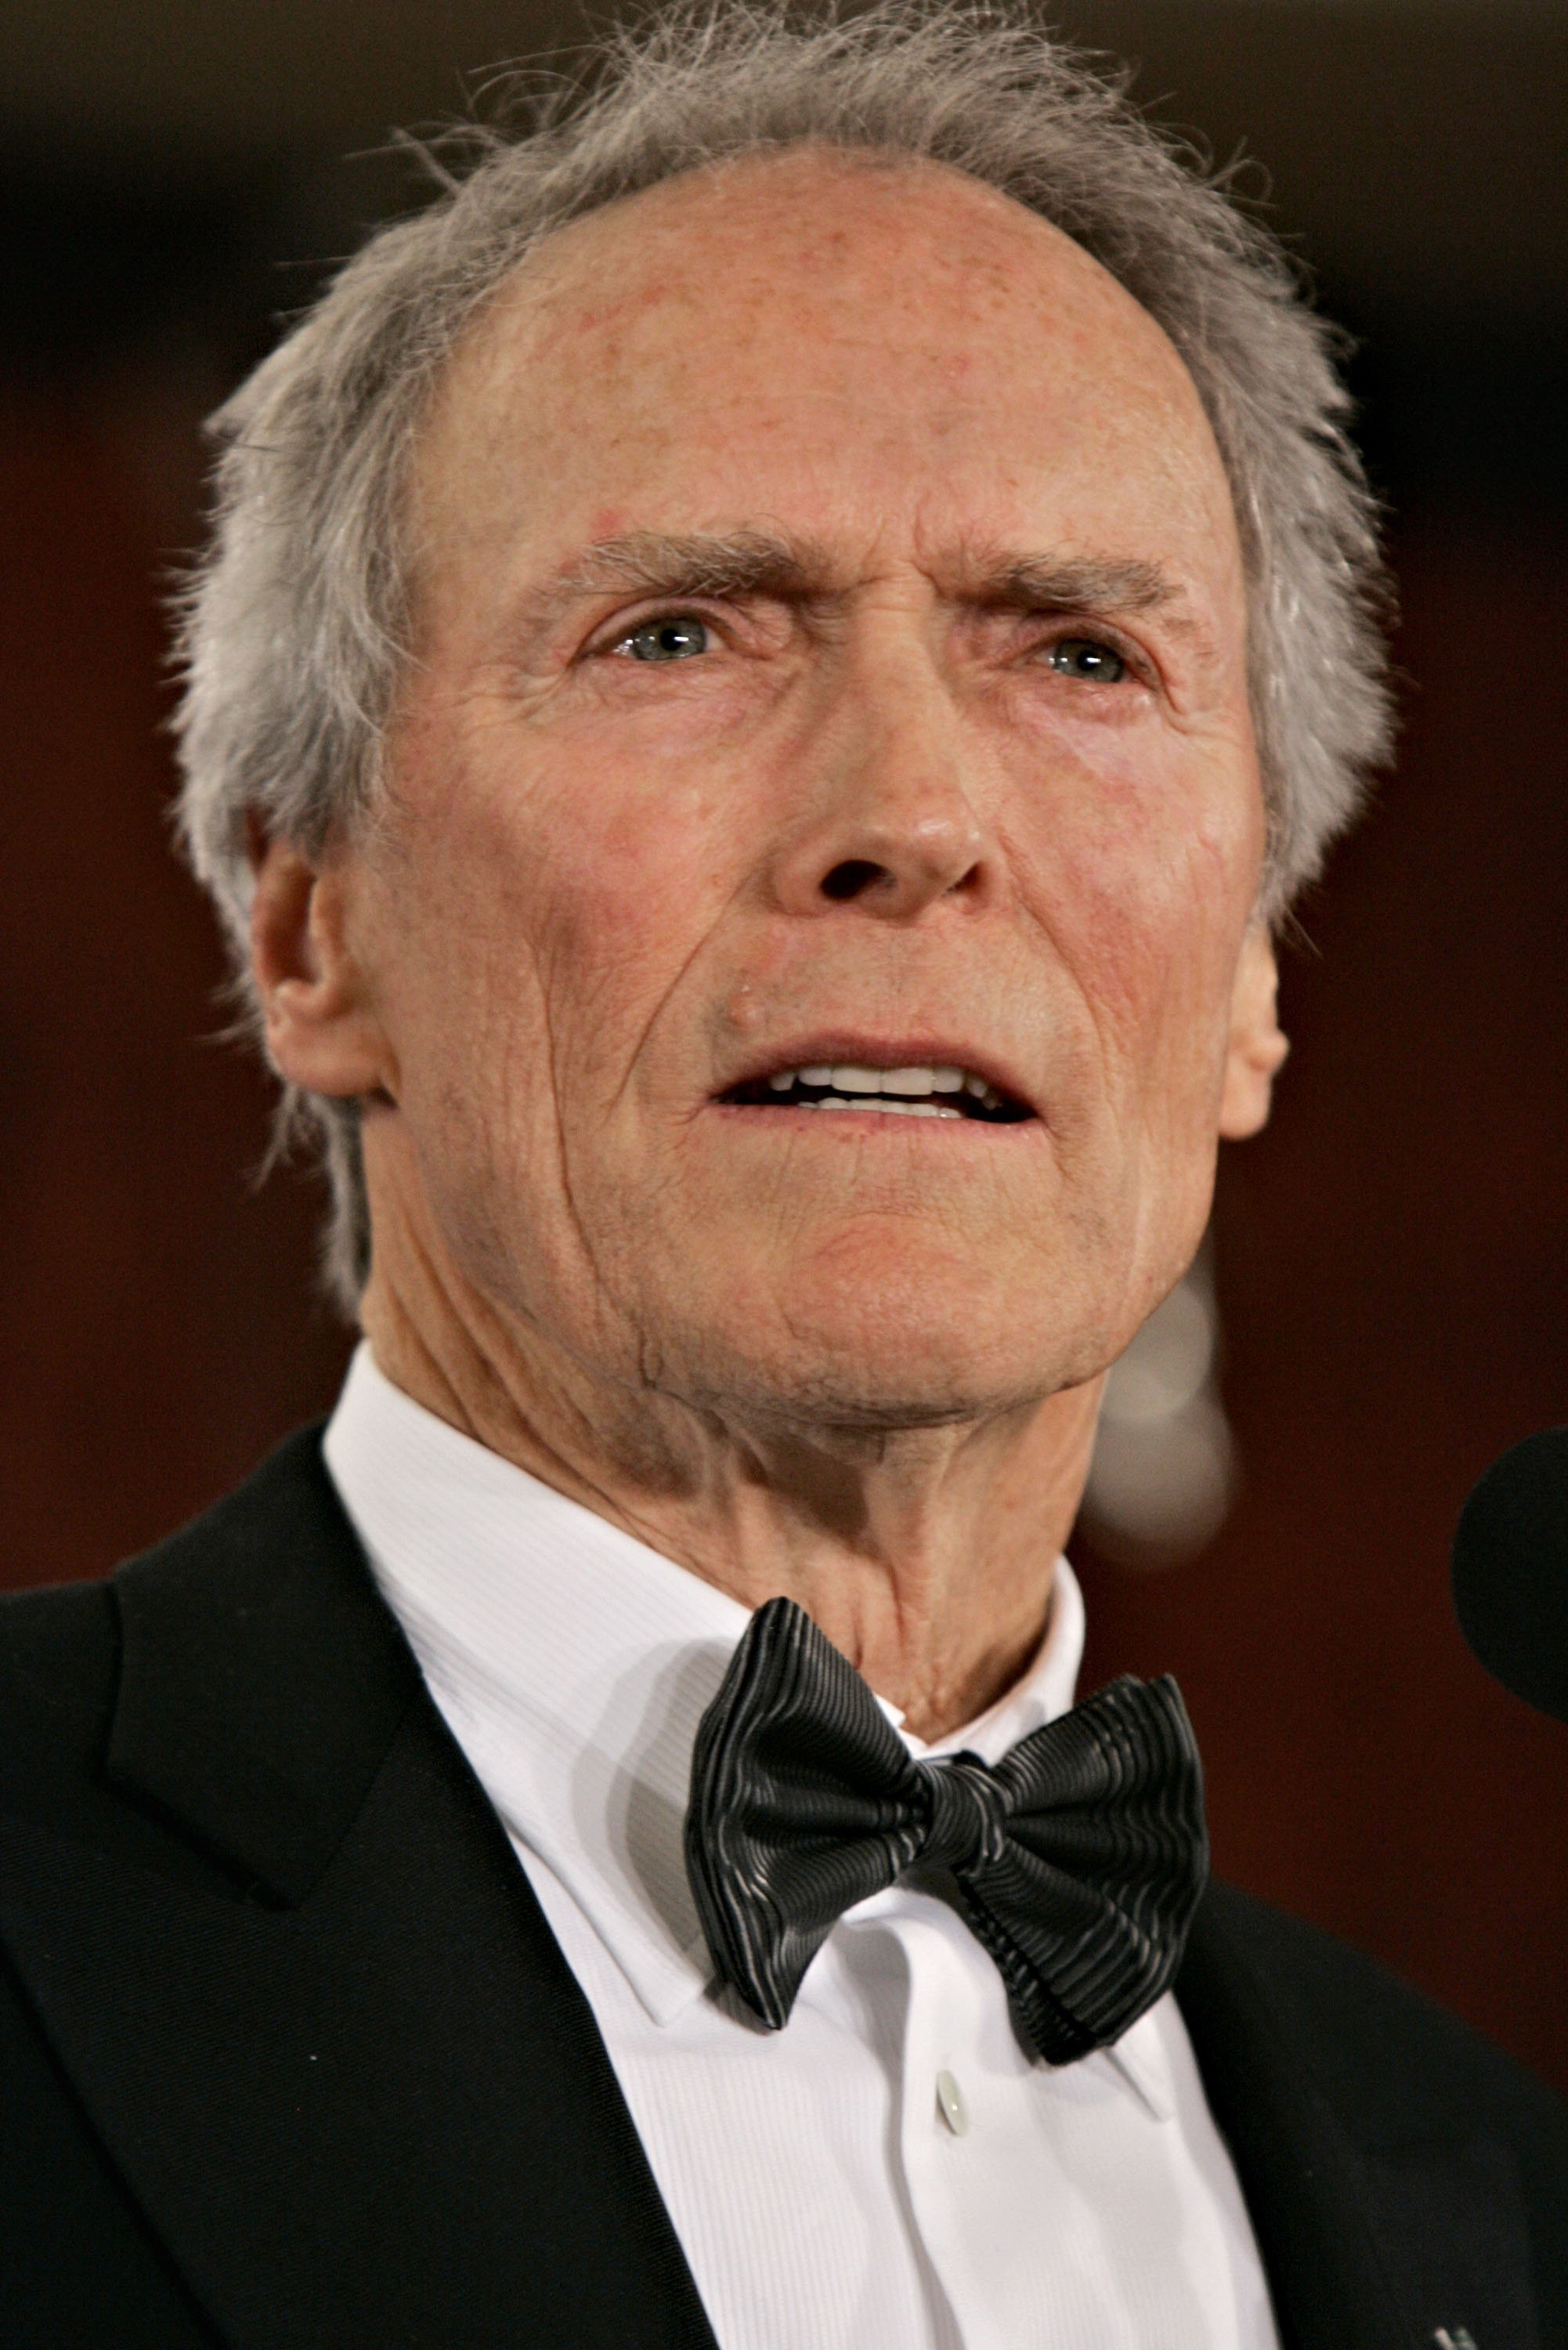 Clint Eastwood during the 58th Annual Directors Guild Of America Awards at Hyatt Regency Century Plaza on January 28, 2006 in Los Angeles, California | Photo: Getty Images